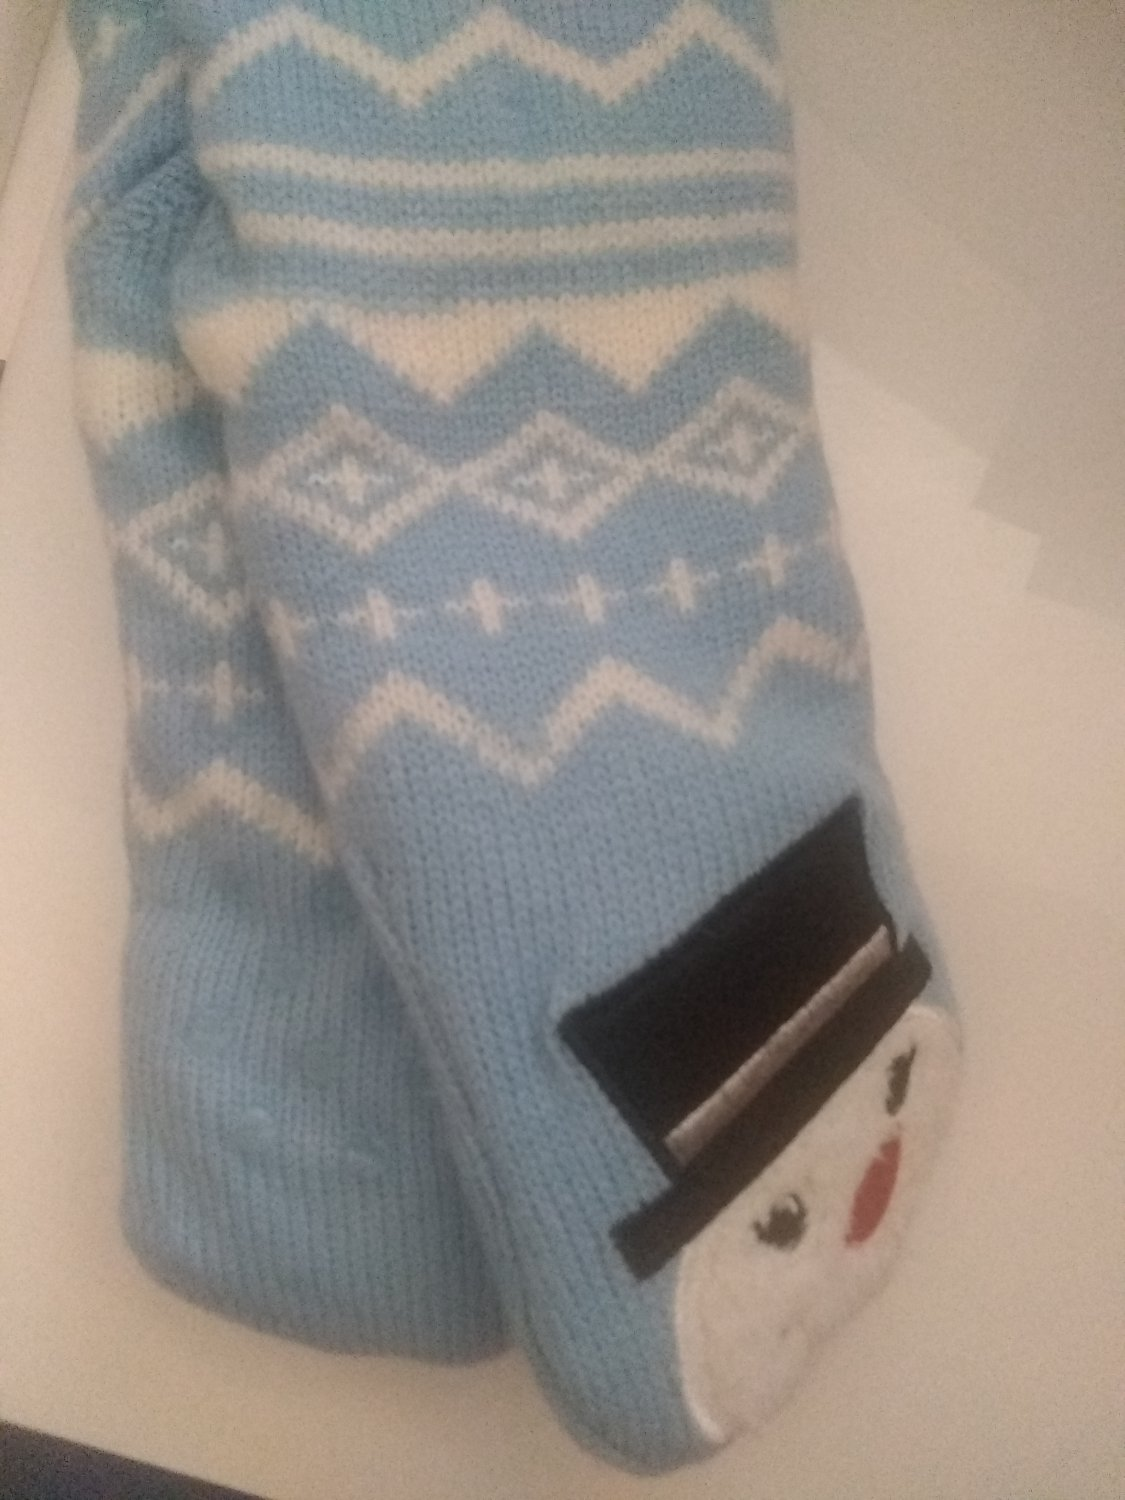 New Snow man slipper socks with grippers